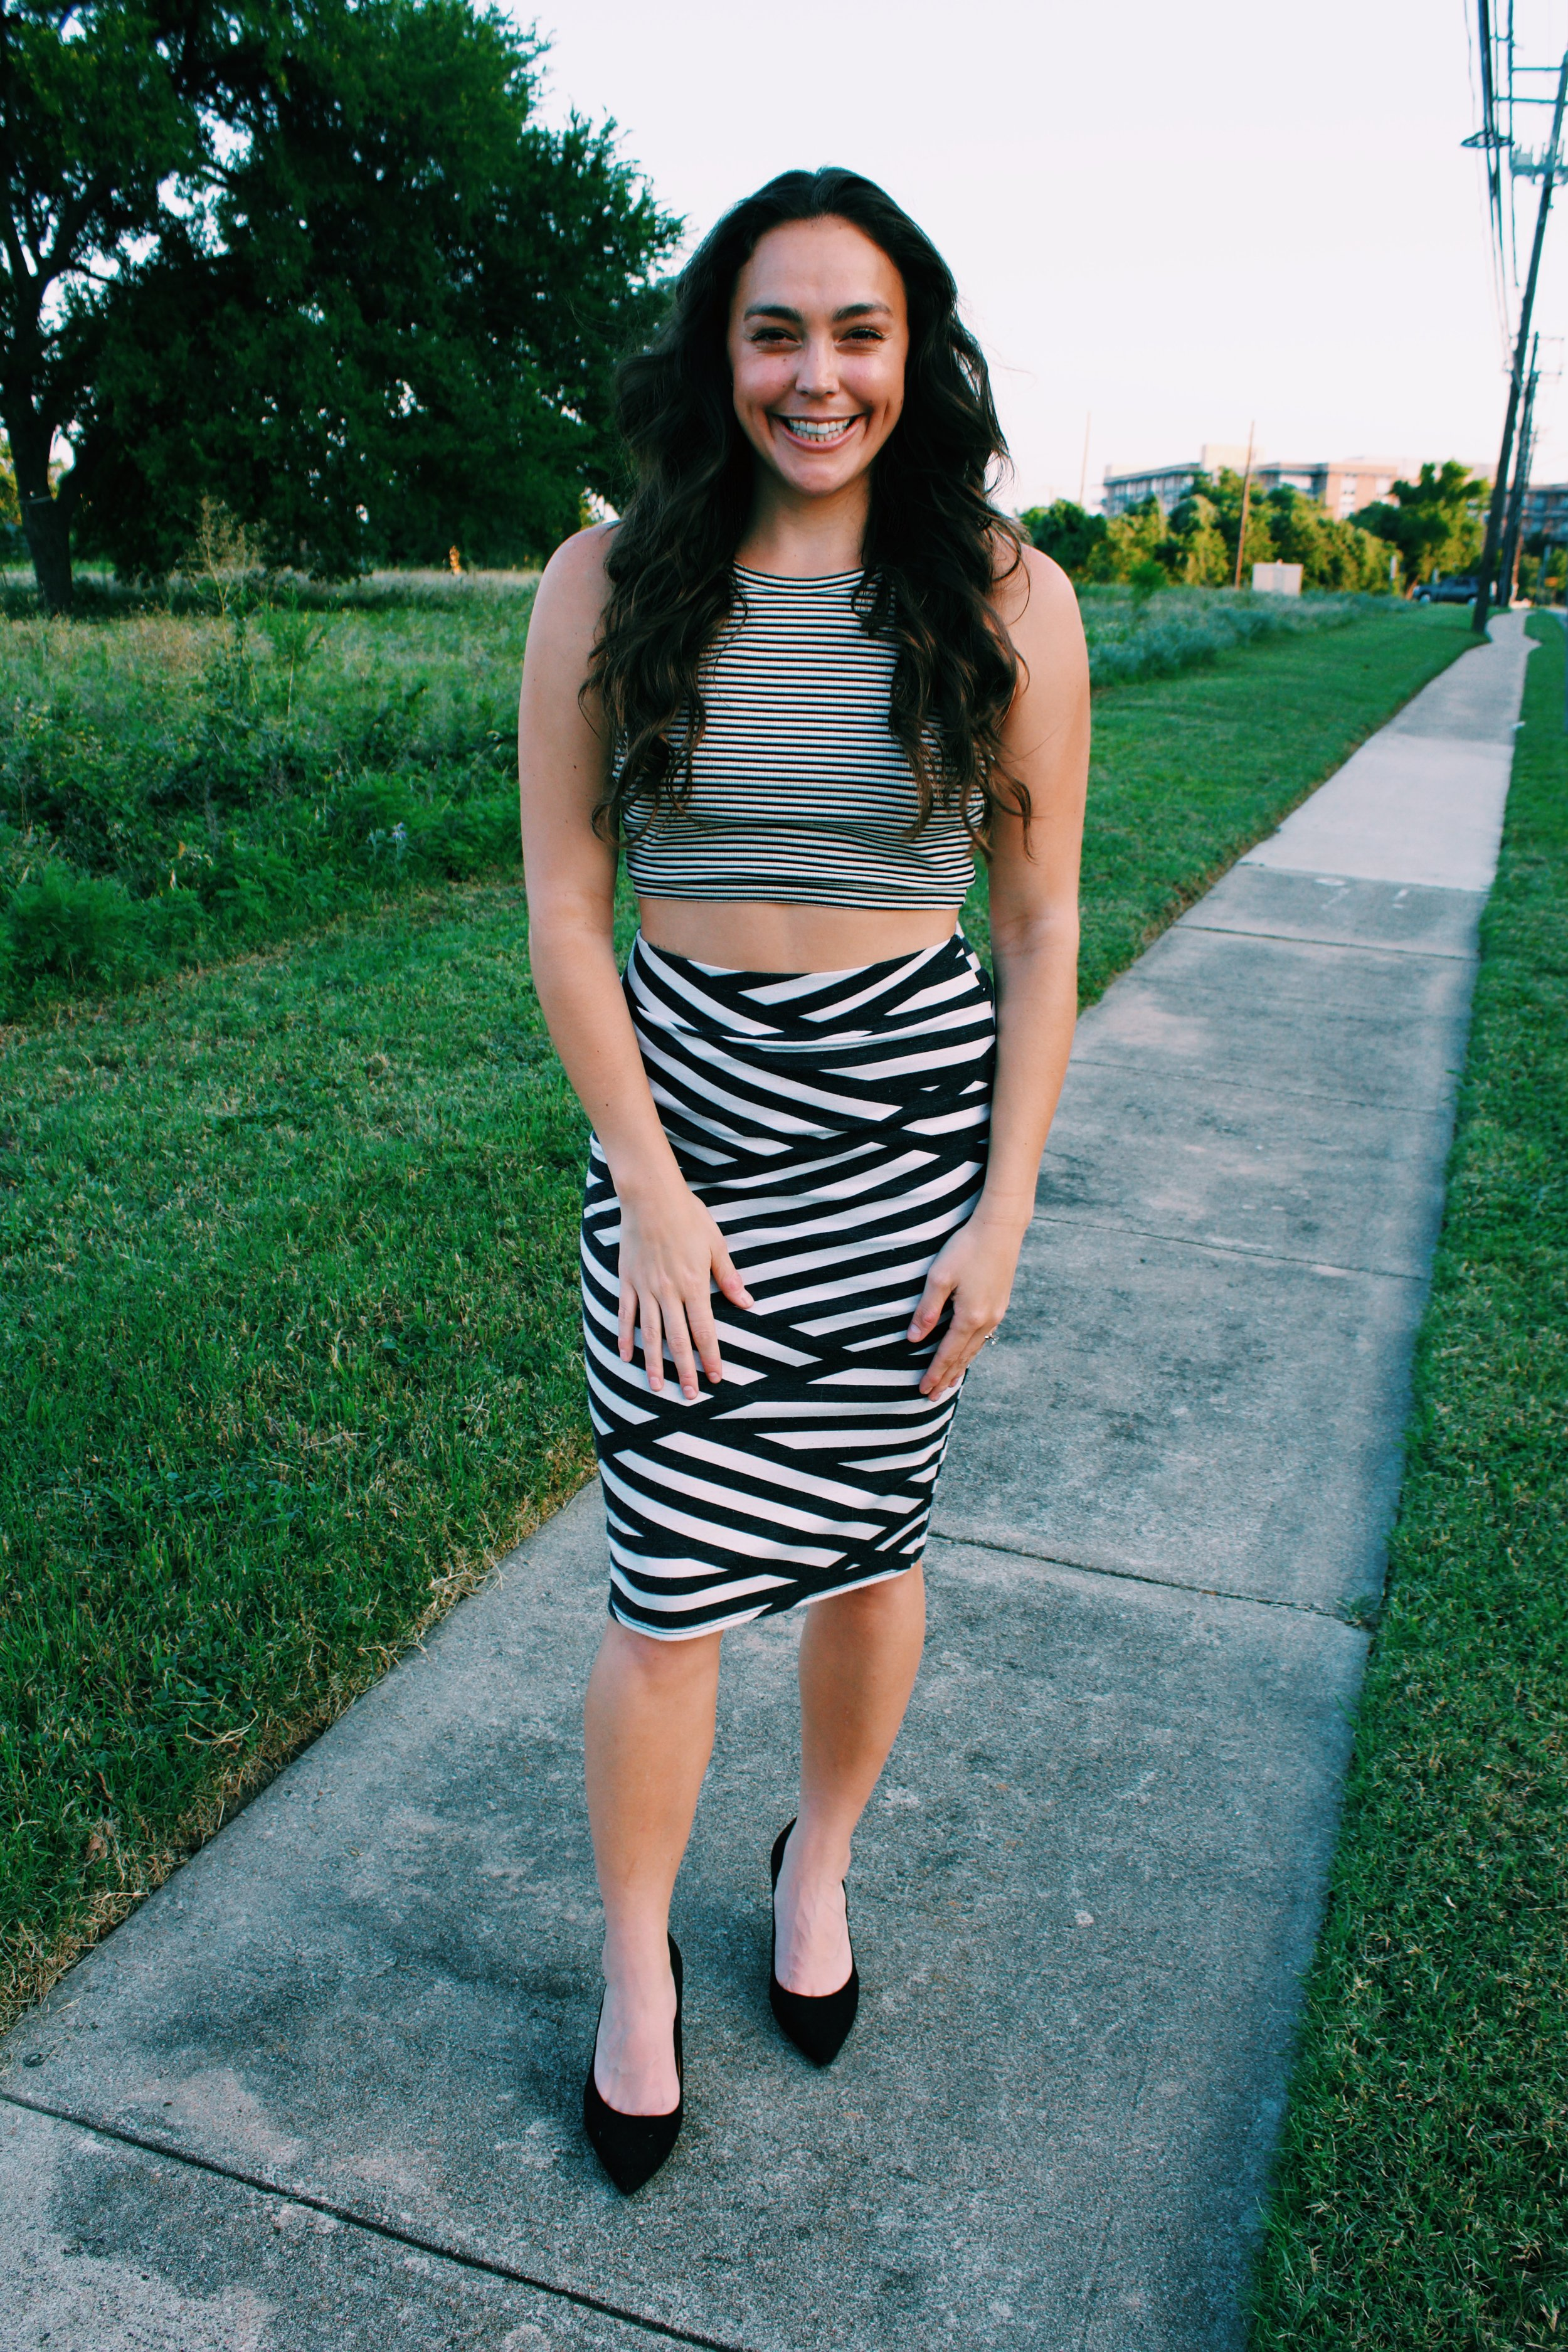 Greer Image Consulting - Blog - 10 Ways to Love Your Late Summer Style - stripes - pattern matching - patterns - austin style - style - summer look - stylish girl